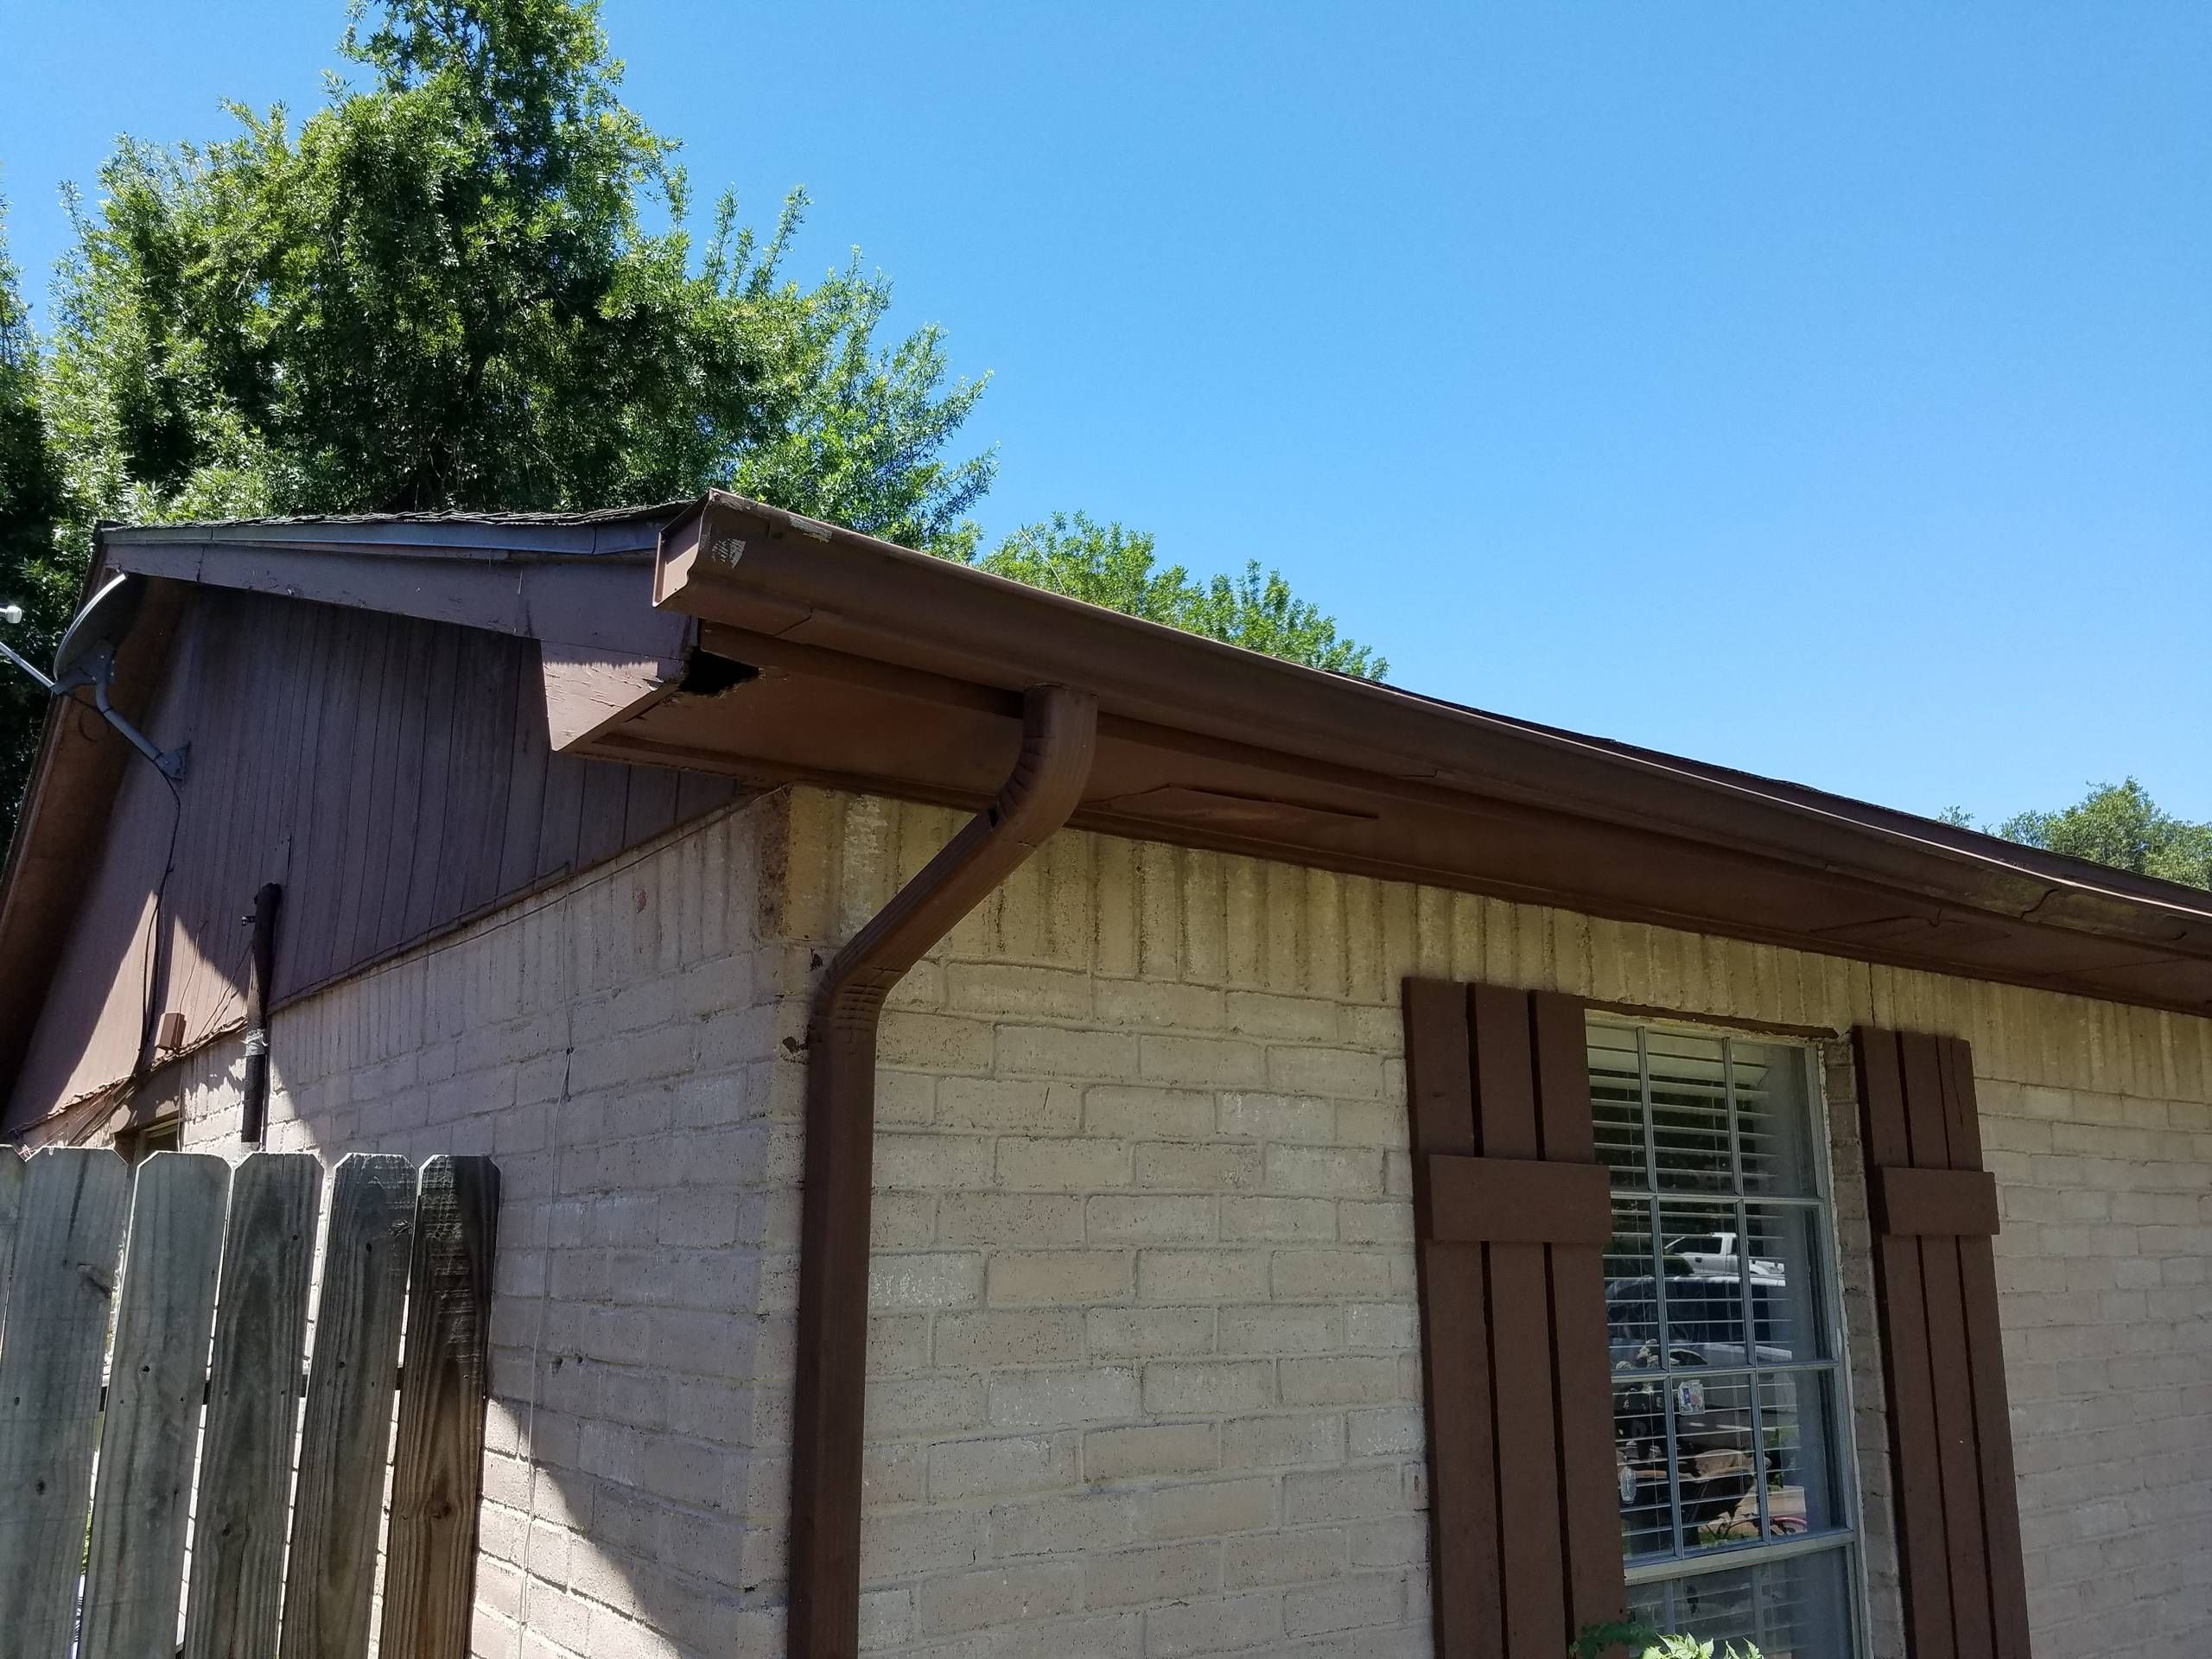 James Hardie Siding Full Replacement